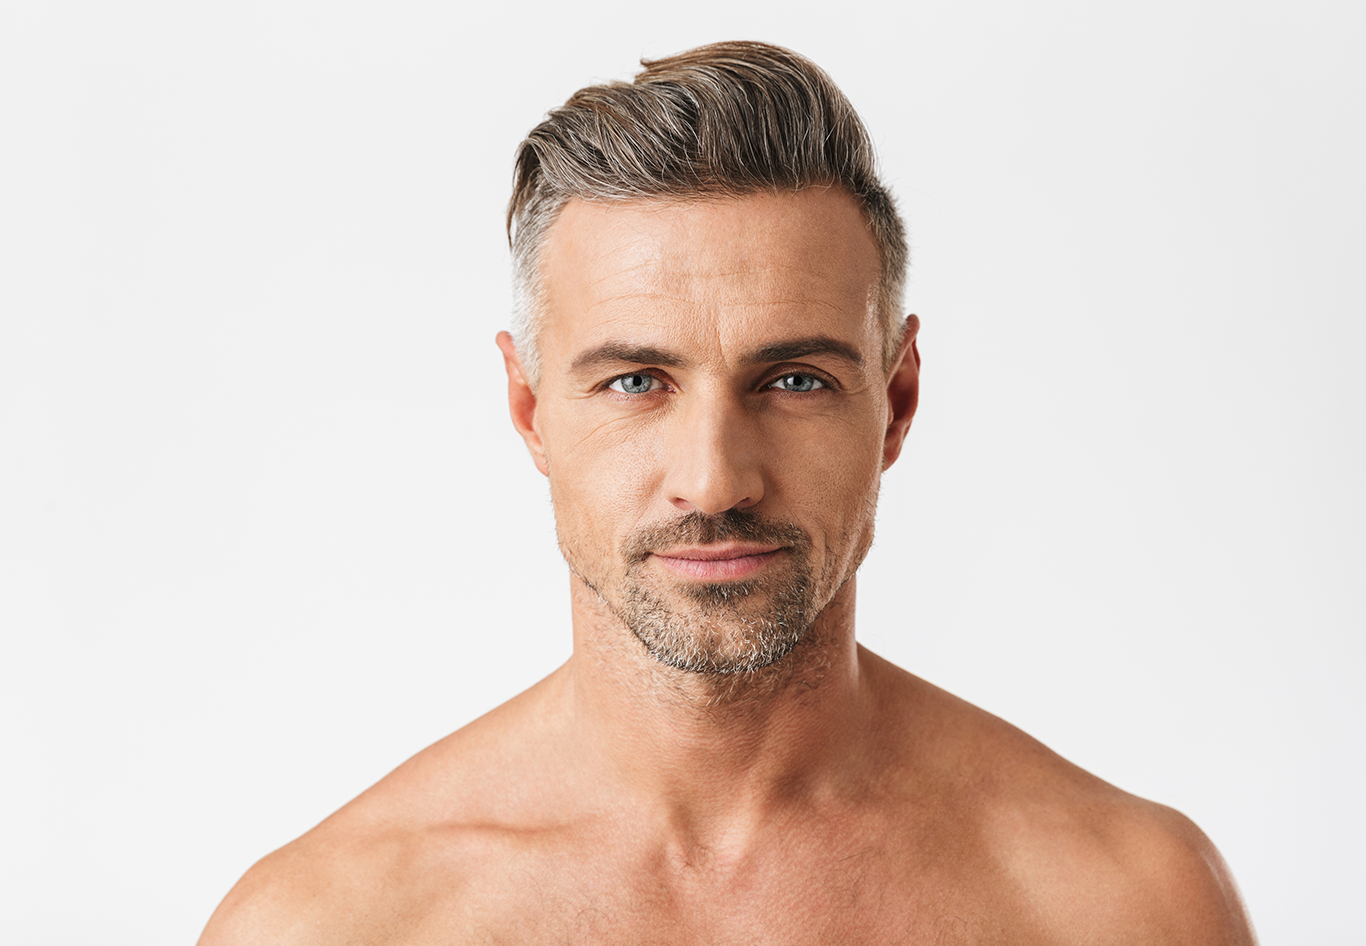 Image of a middle aged male model with youthful face and skin, which can be achieved with Medical Dermatology treatments at Spring Street Dermatology in New York City, NY.